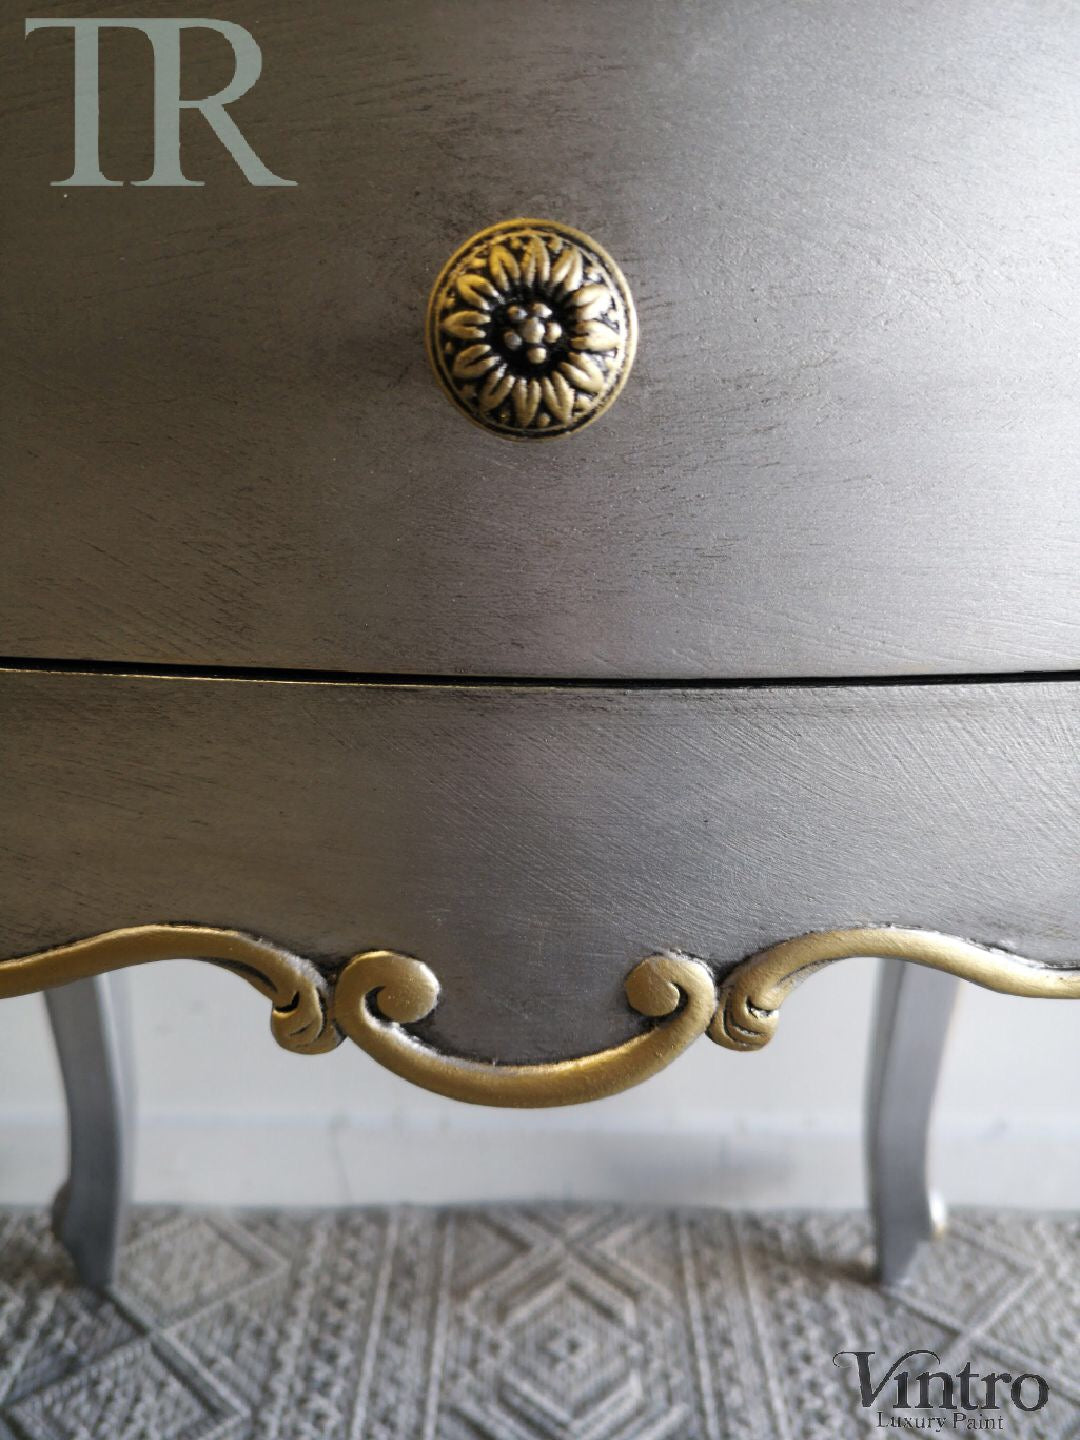 Commission Bedside Tables in Vintro Metallic Silver and Gold